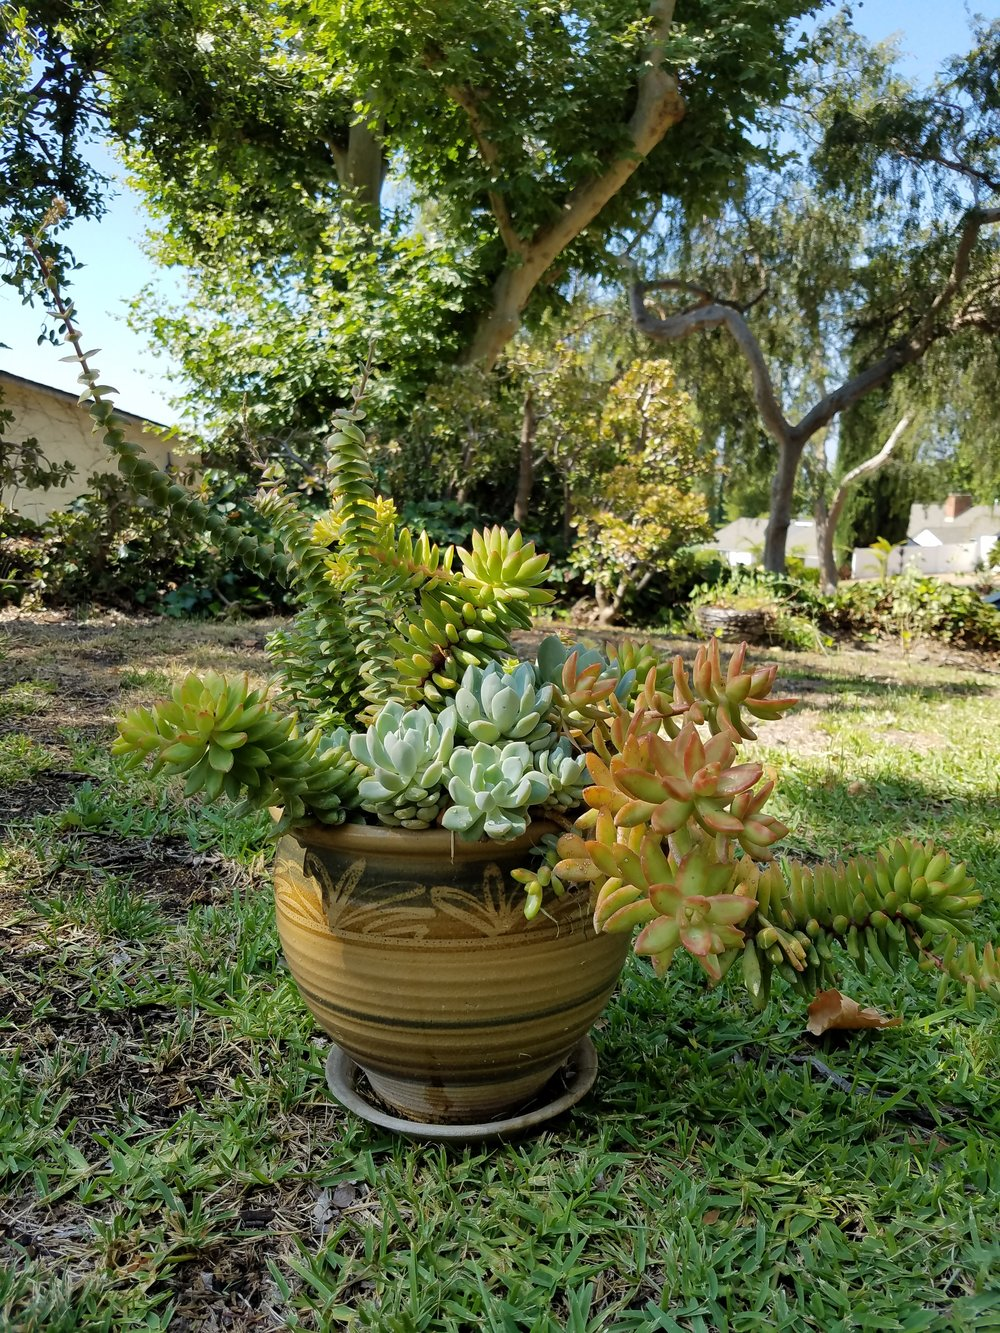 There's so many ways to grow plantsand so many plants to grow: FlowersSucculentsShade loversPollinator friendlyFarmingLandscapingSchool Gardens -